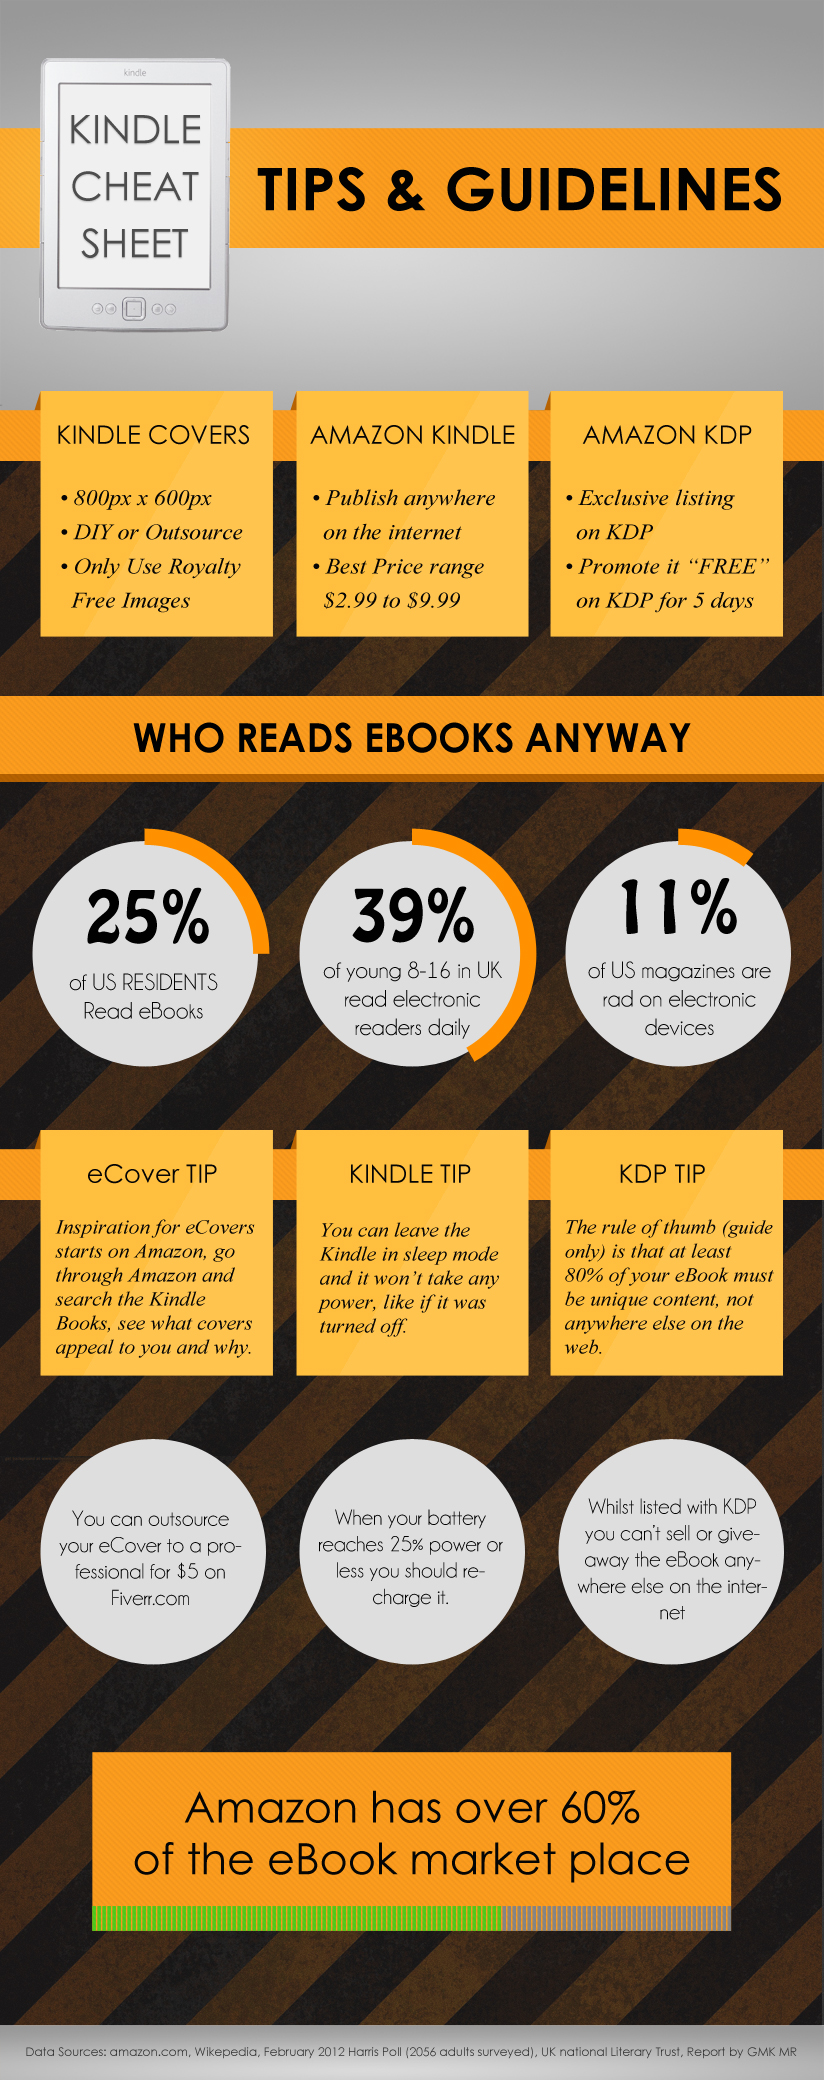 Amazon Kindle Cheat Sheet Tips and Guidelines